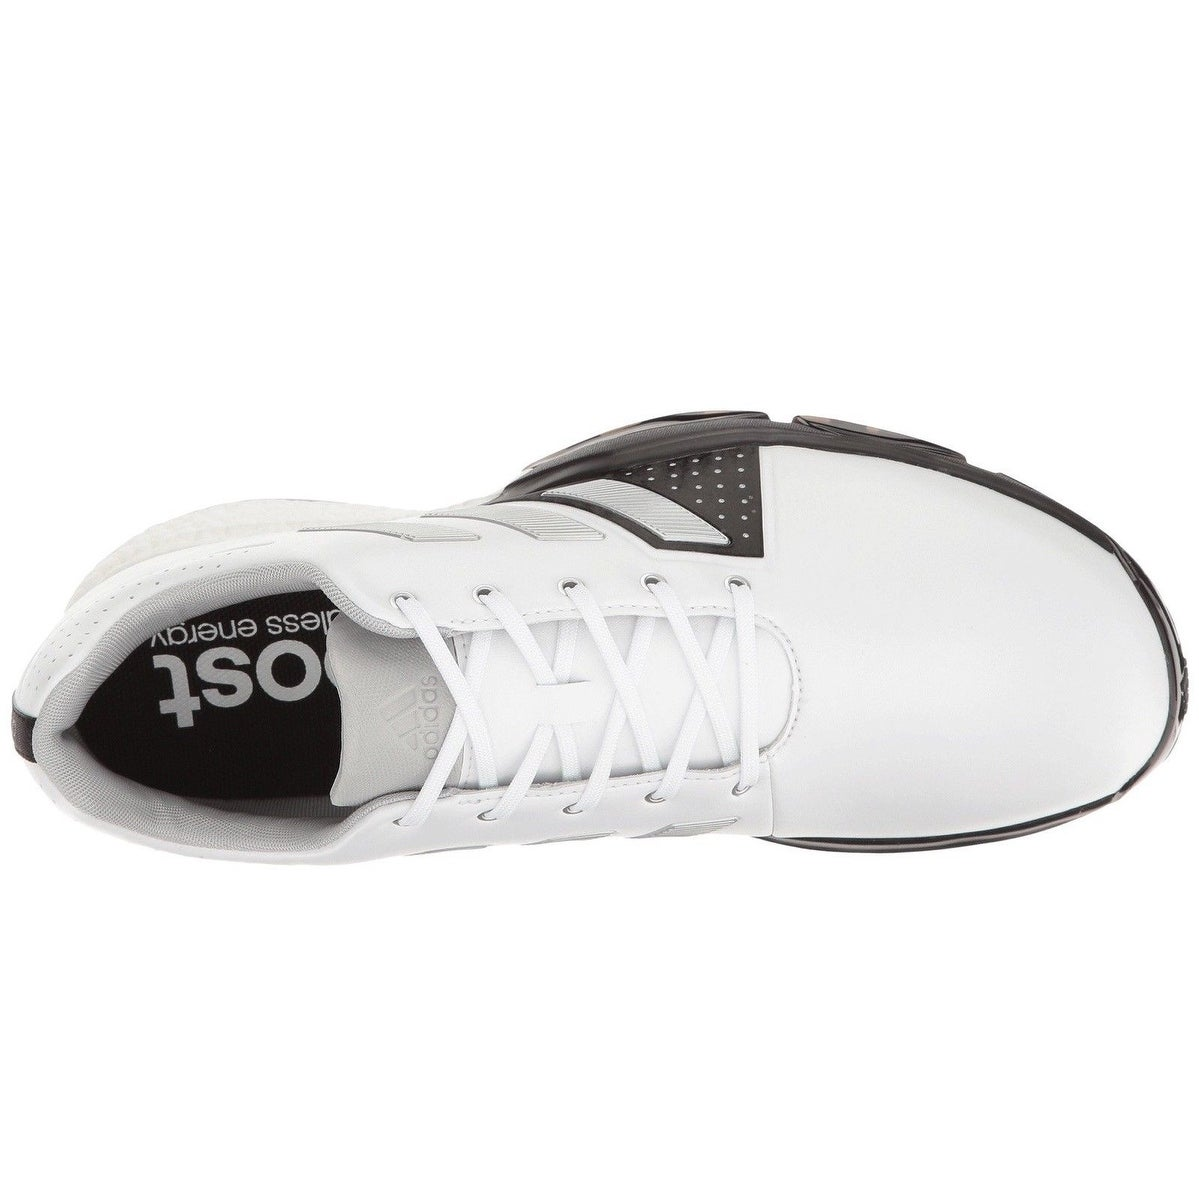 purchase cheap 78504 072a9 Shop Adidas Men s Adipower Boost 3 White Silver Metallic Black Golf Shoes  Q44756 Q44762 - Free Shipping Today - Overstock - 18847908